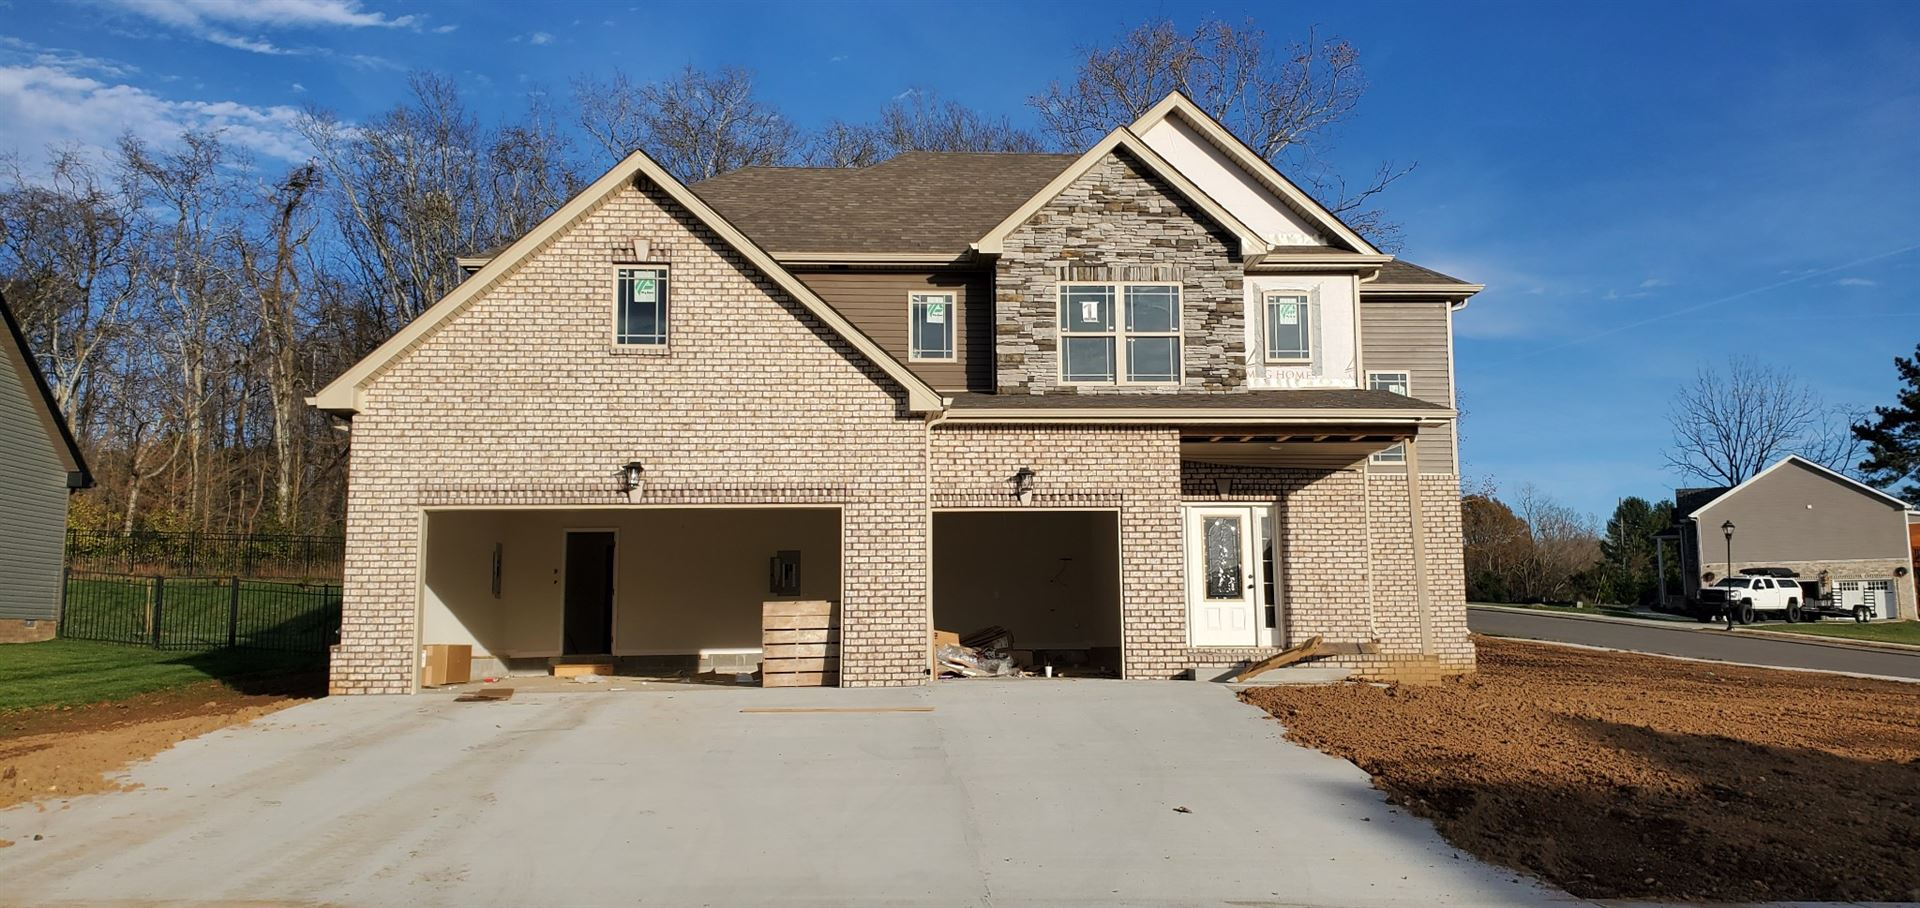 1 River Chase, Clarksville, TN 37043 - MLS#: 2292261